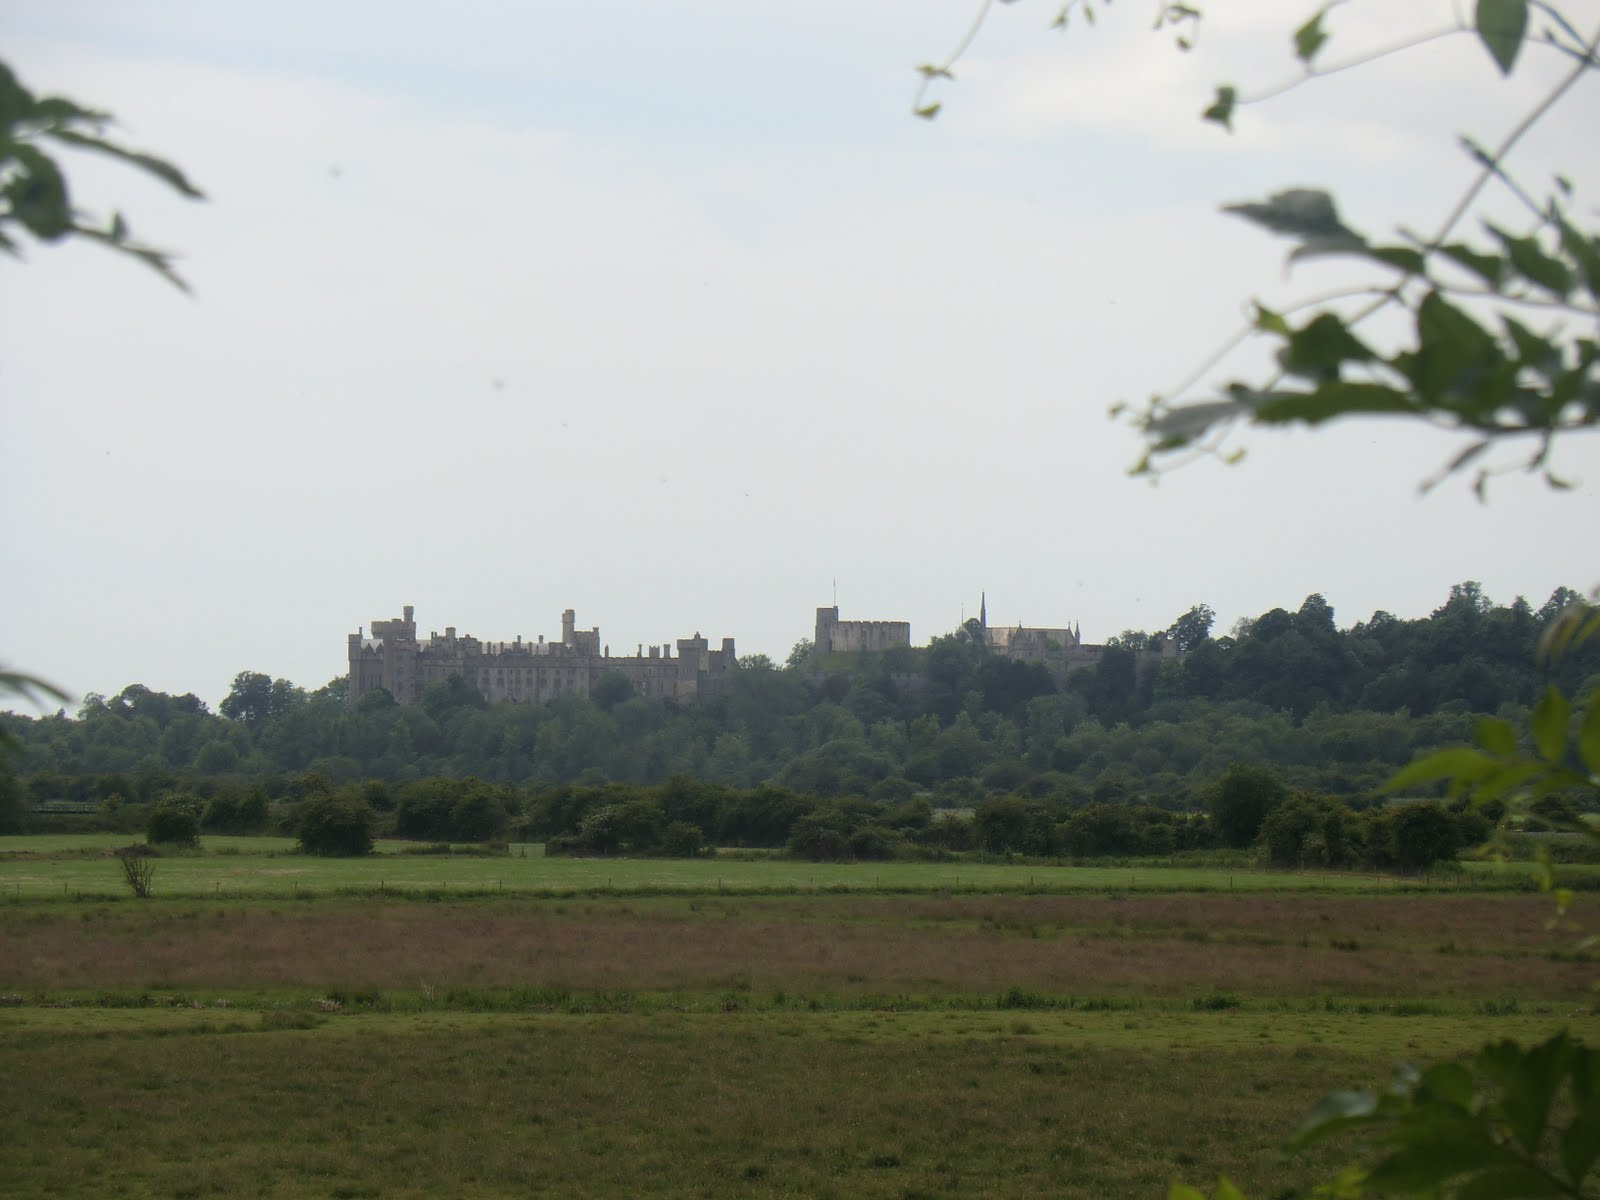 CIMG8844 Distant view of Arundel Castle